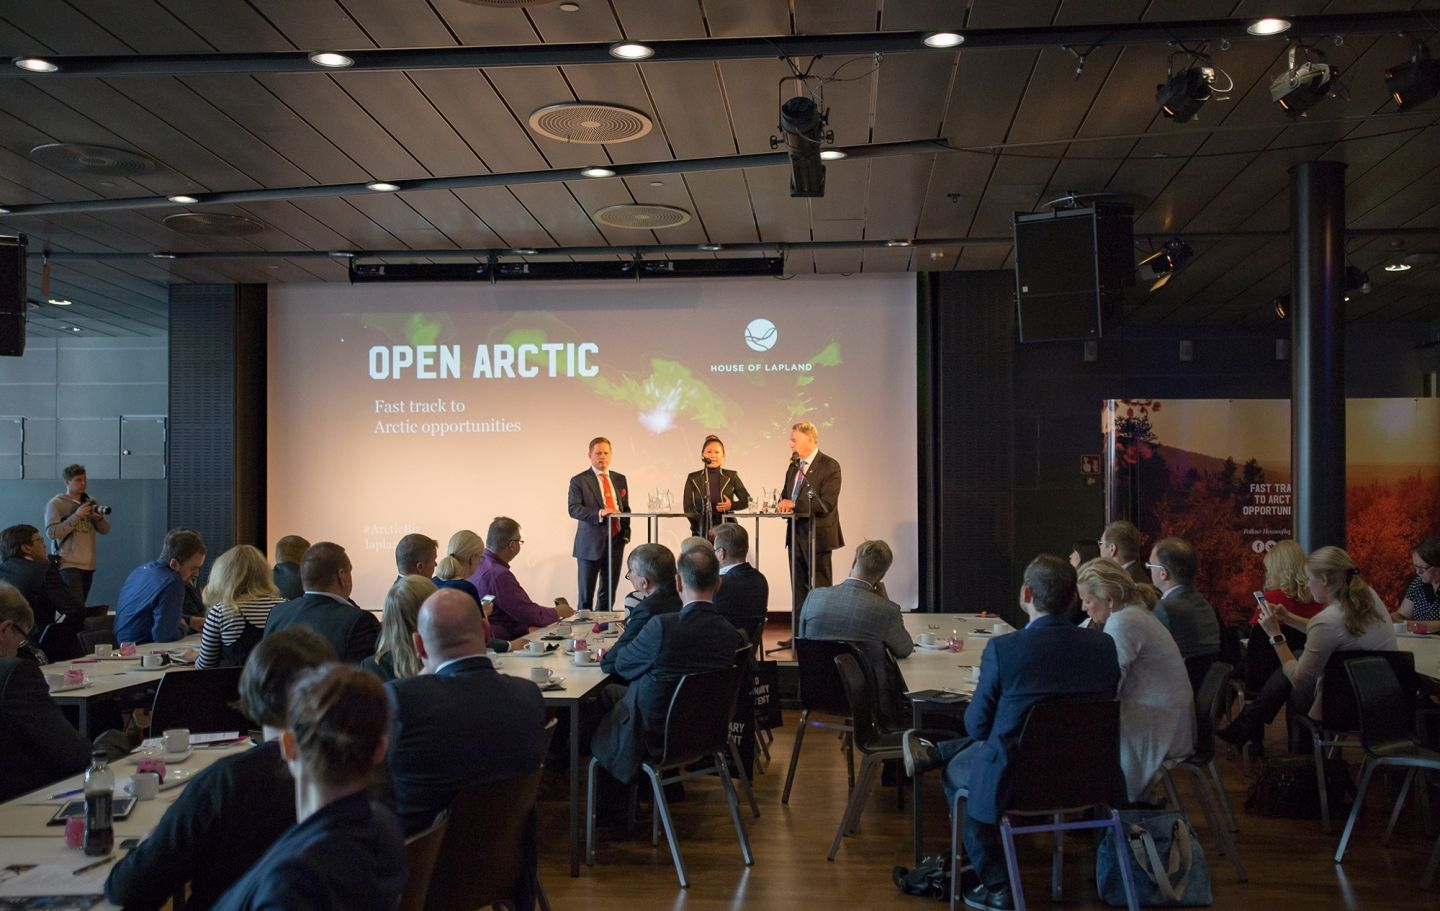 Pohjoinen means business arctic railway Open Arctic